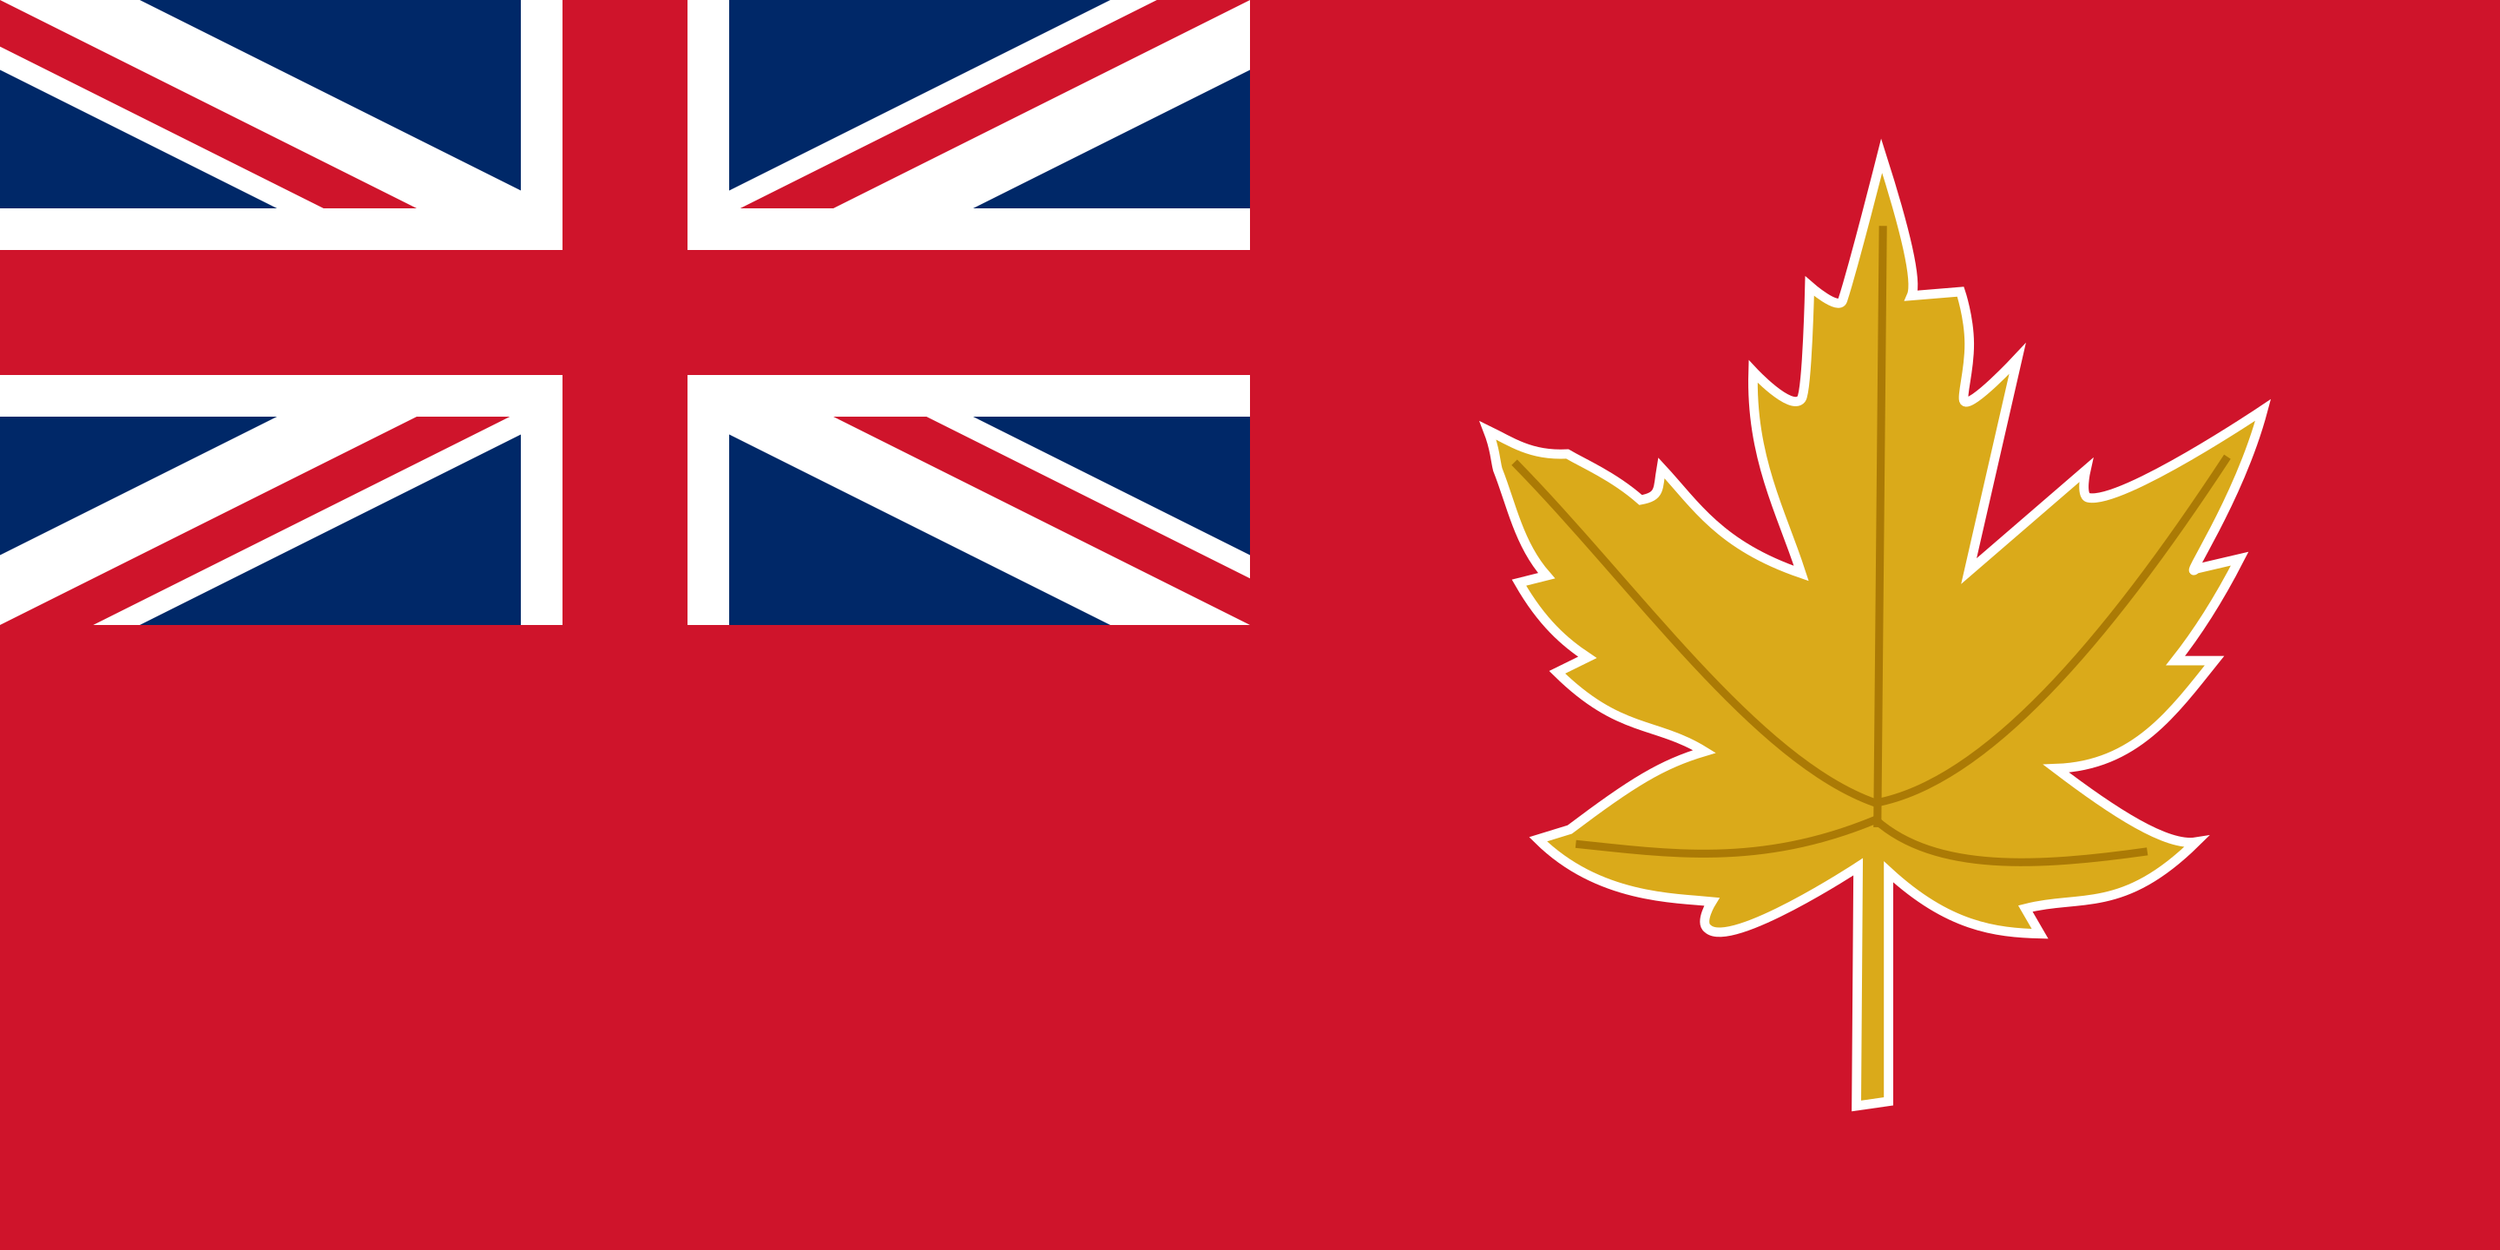 The design proposed by a commission to replace the old flag.